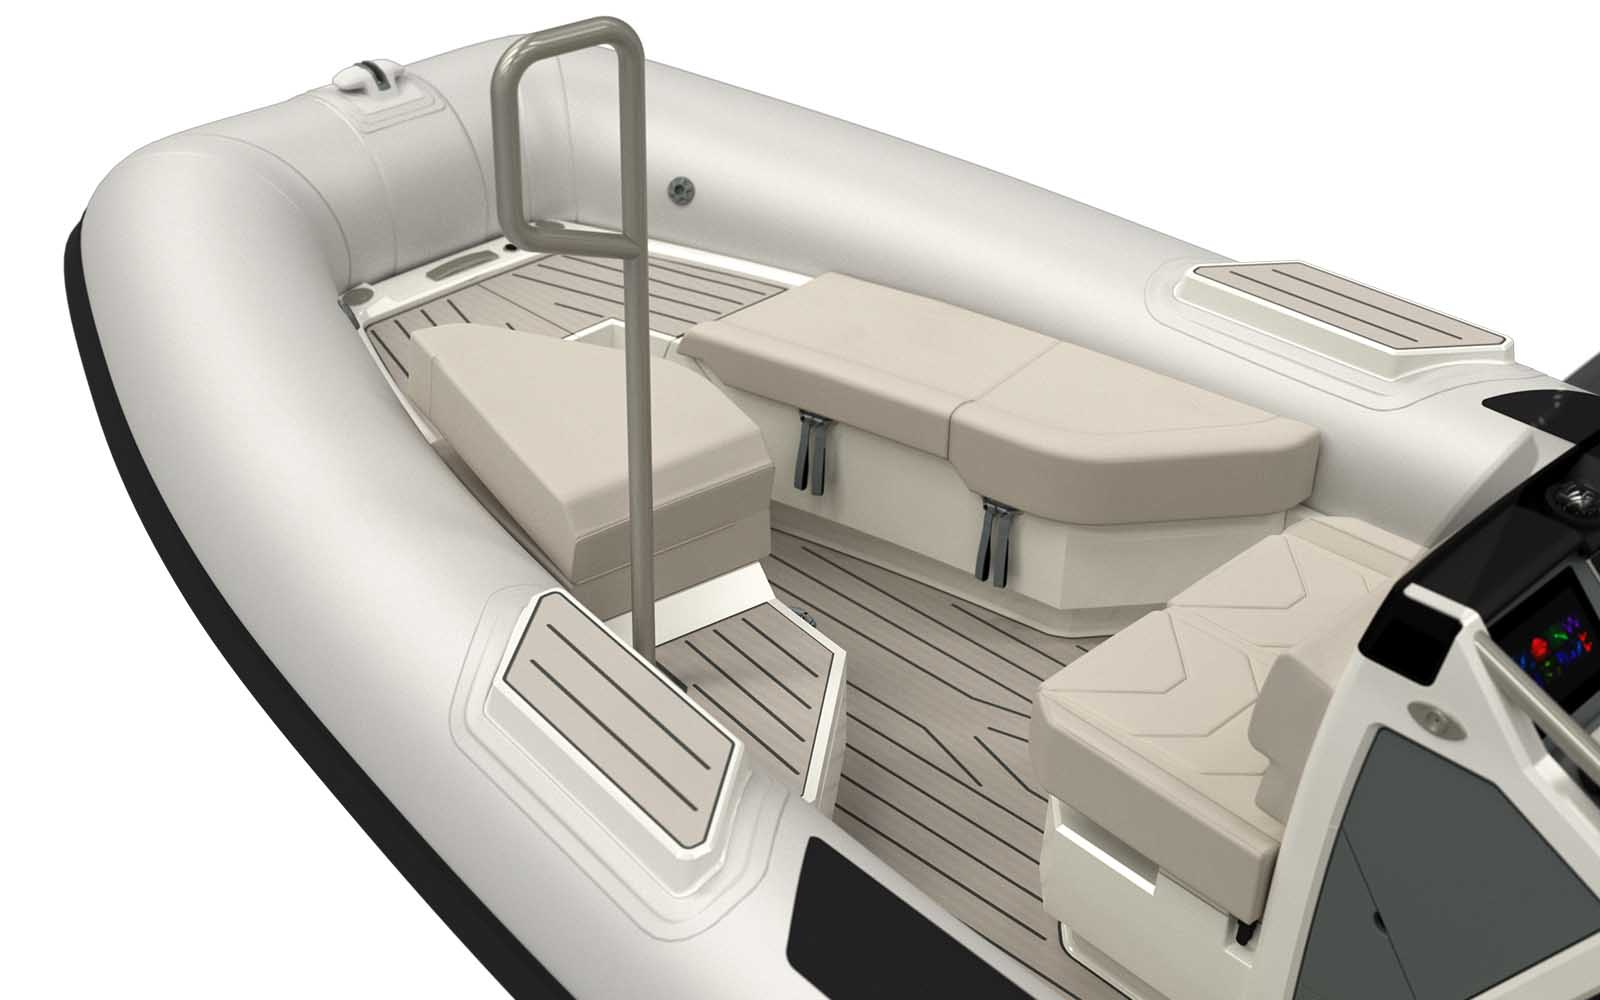 Nova linha de tender williams jet tender - boat shopping